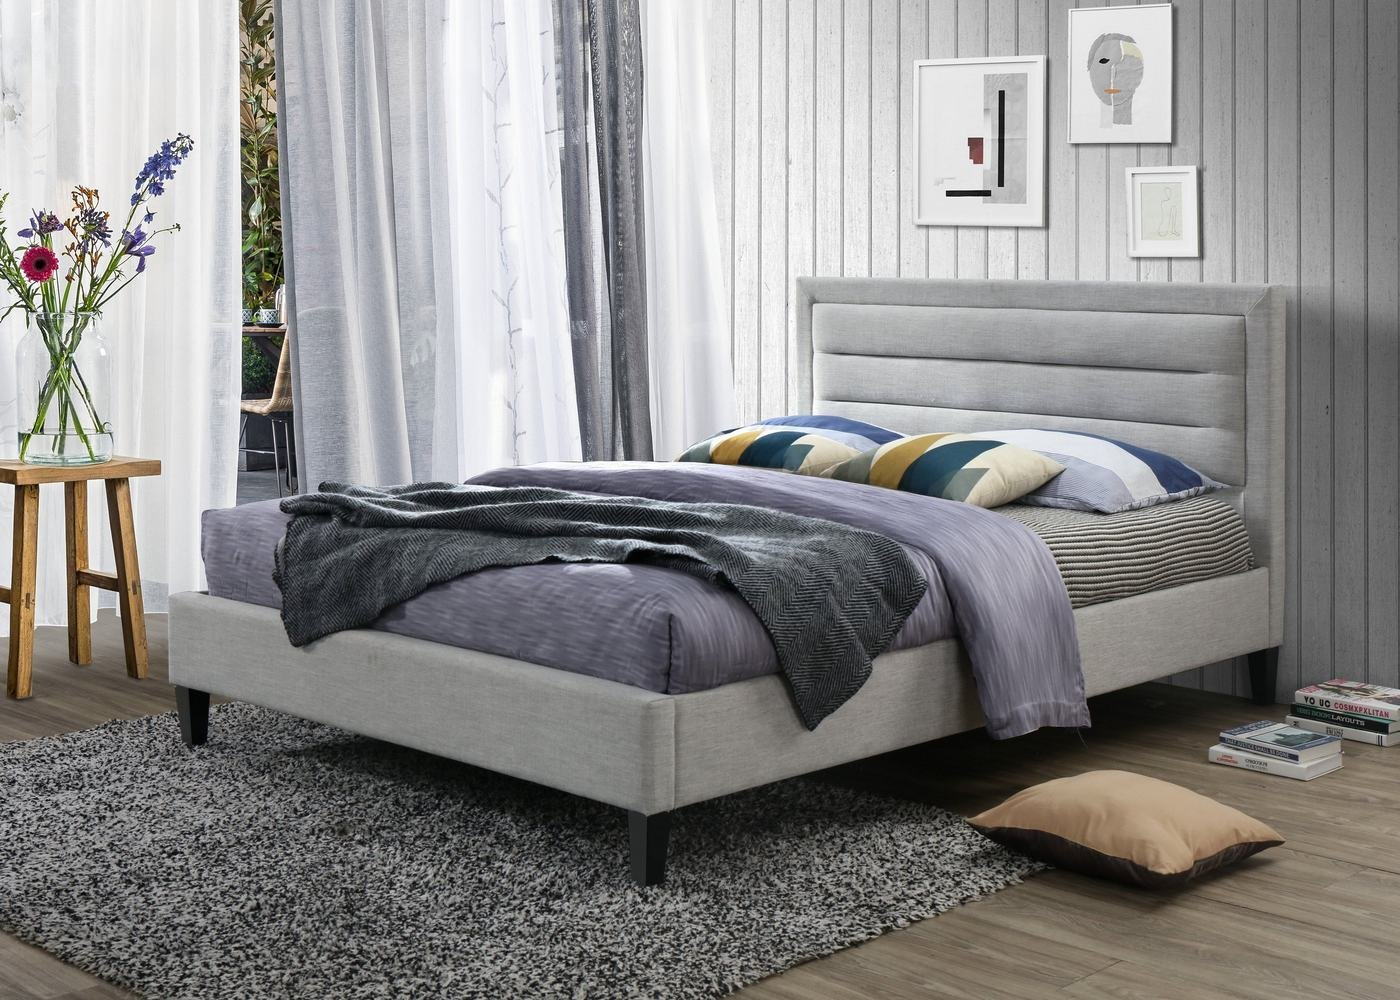 Best Powell Kyle Complete Bed Set With 8 Inch Memory Foam With Pictures